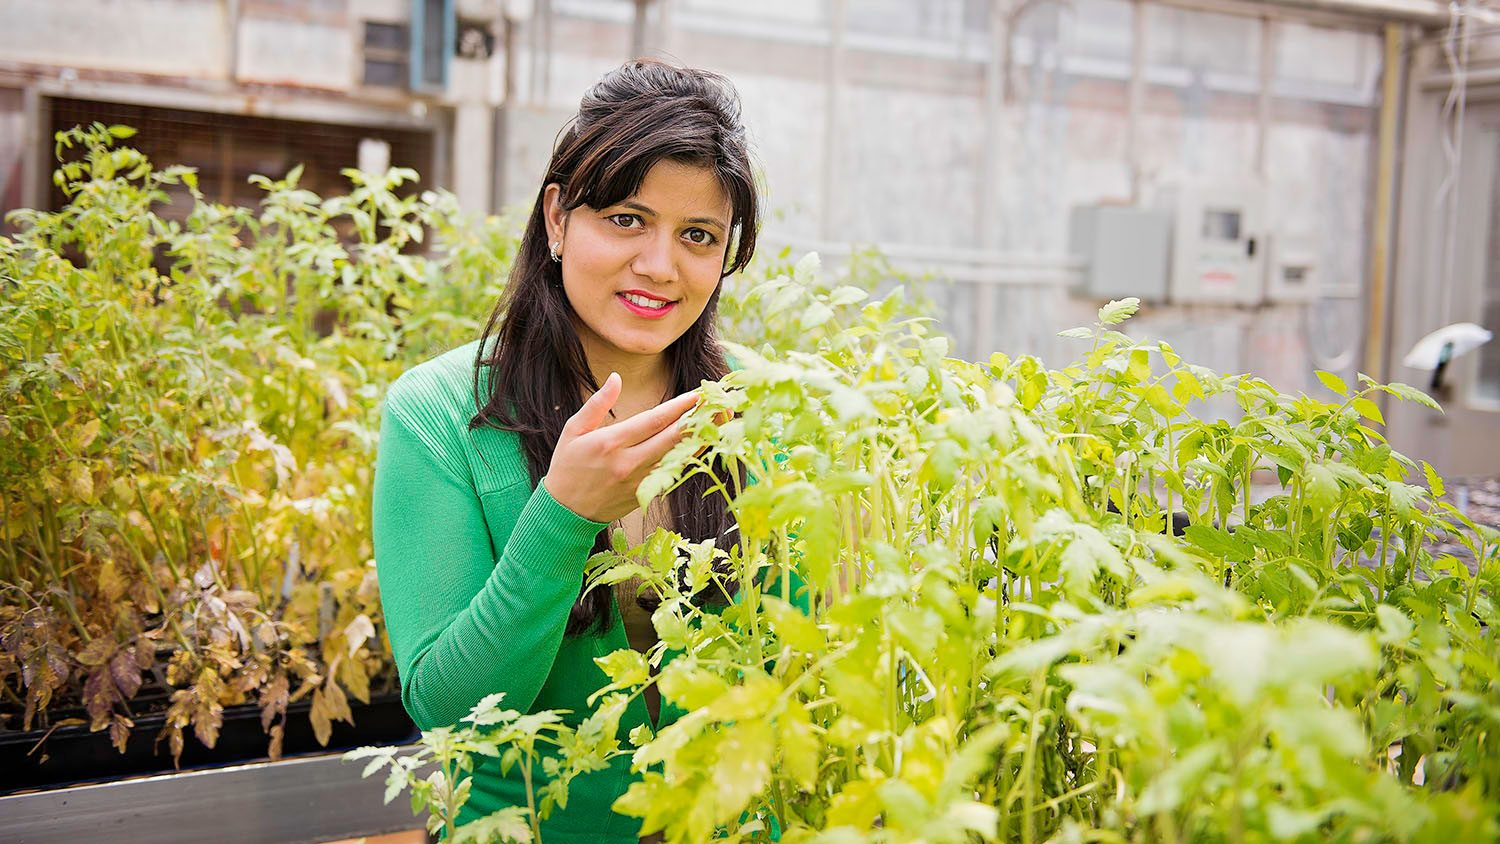 CALS Ph.D. student Pragya Adhikari in a greenhouse